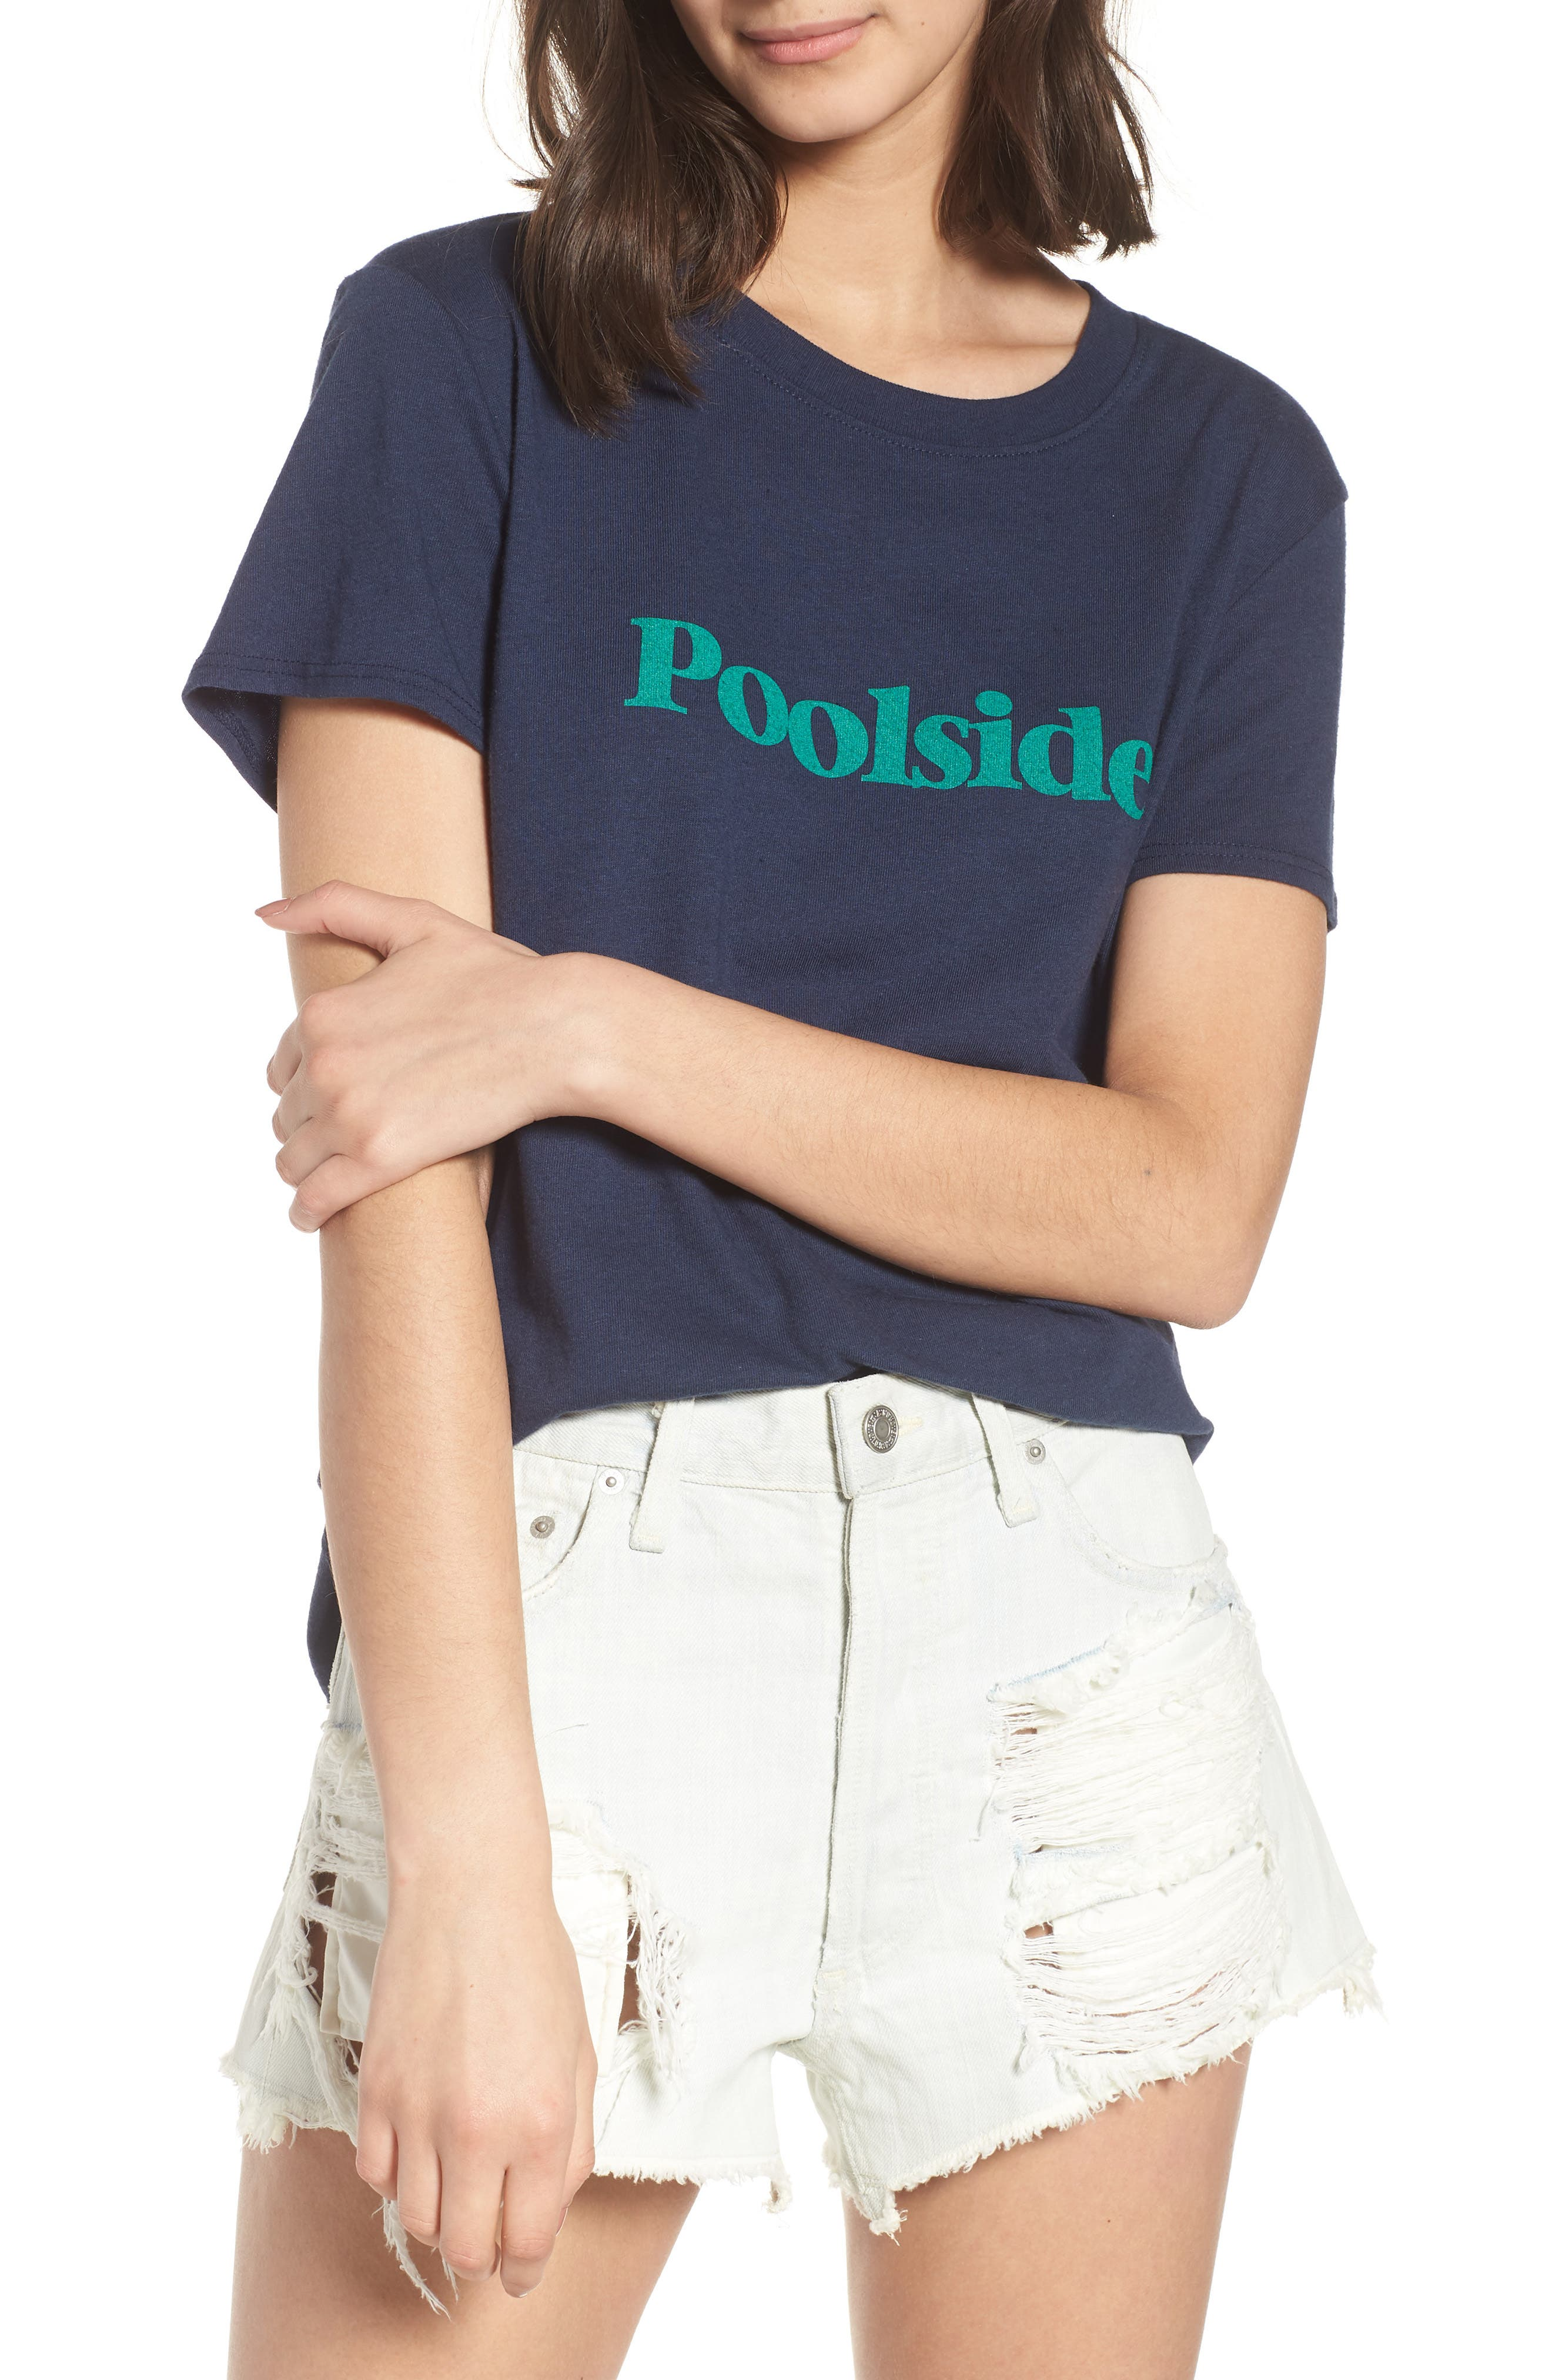 Poolside Graphic Tee,                             Main thumbnail 1, color,                             Navy